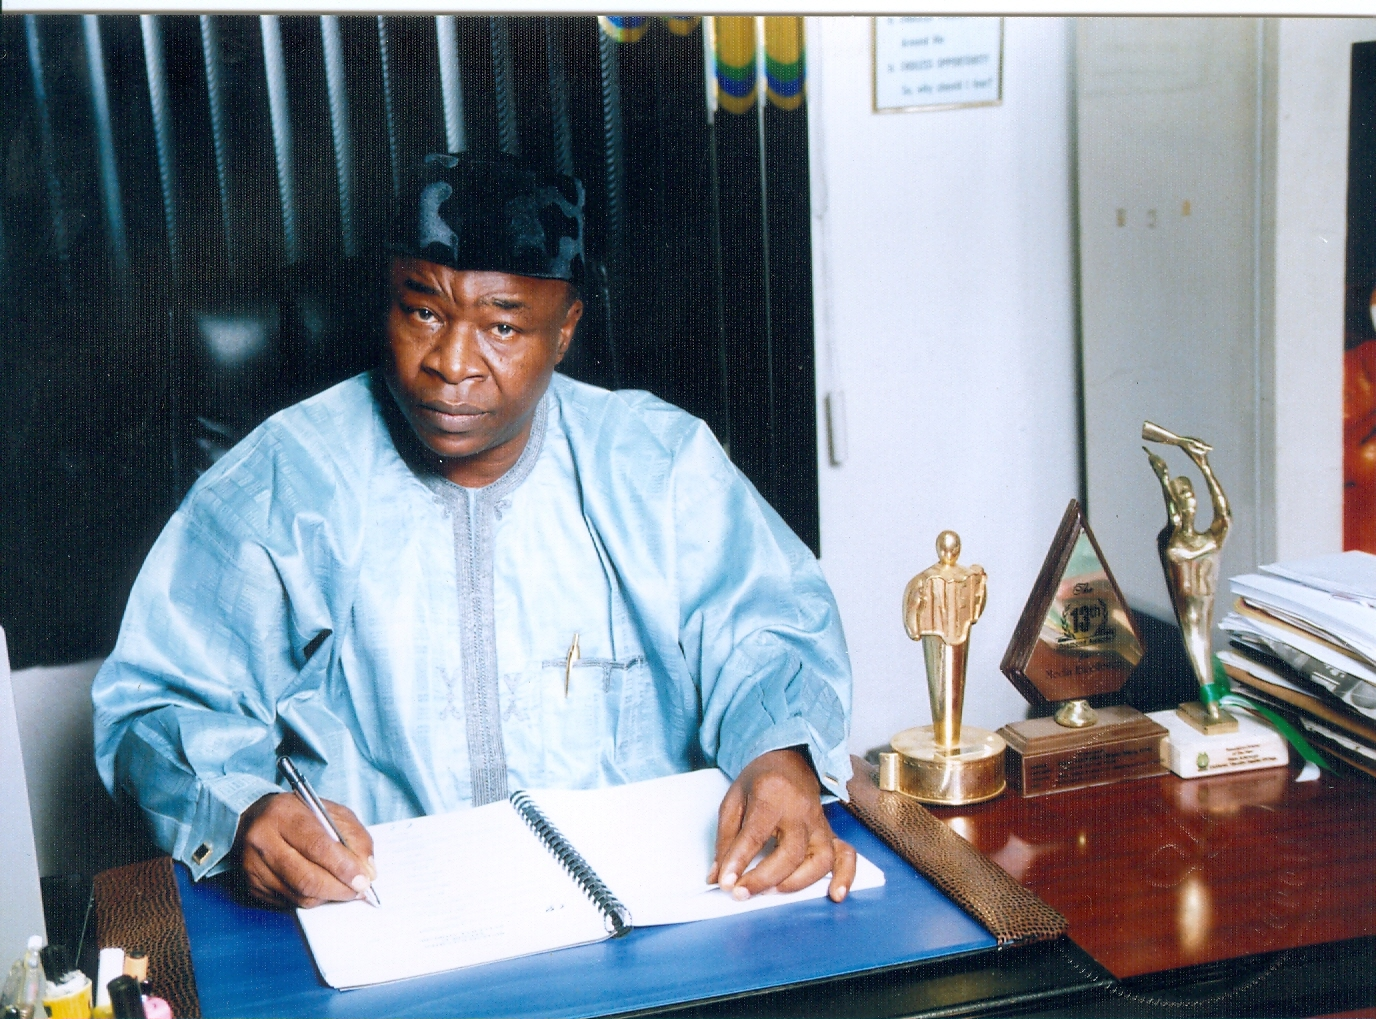 Wale Adenuga: The Tobacco Seller's Son Who Created Two Of Nigeria's Most Famous TV Series